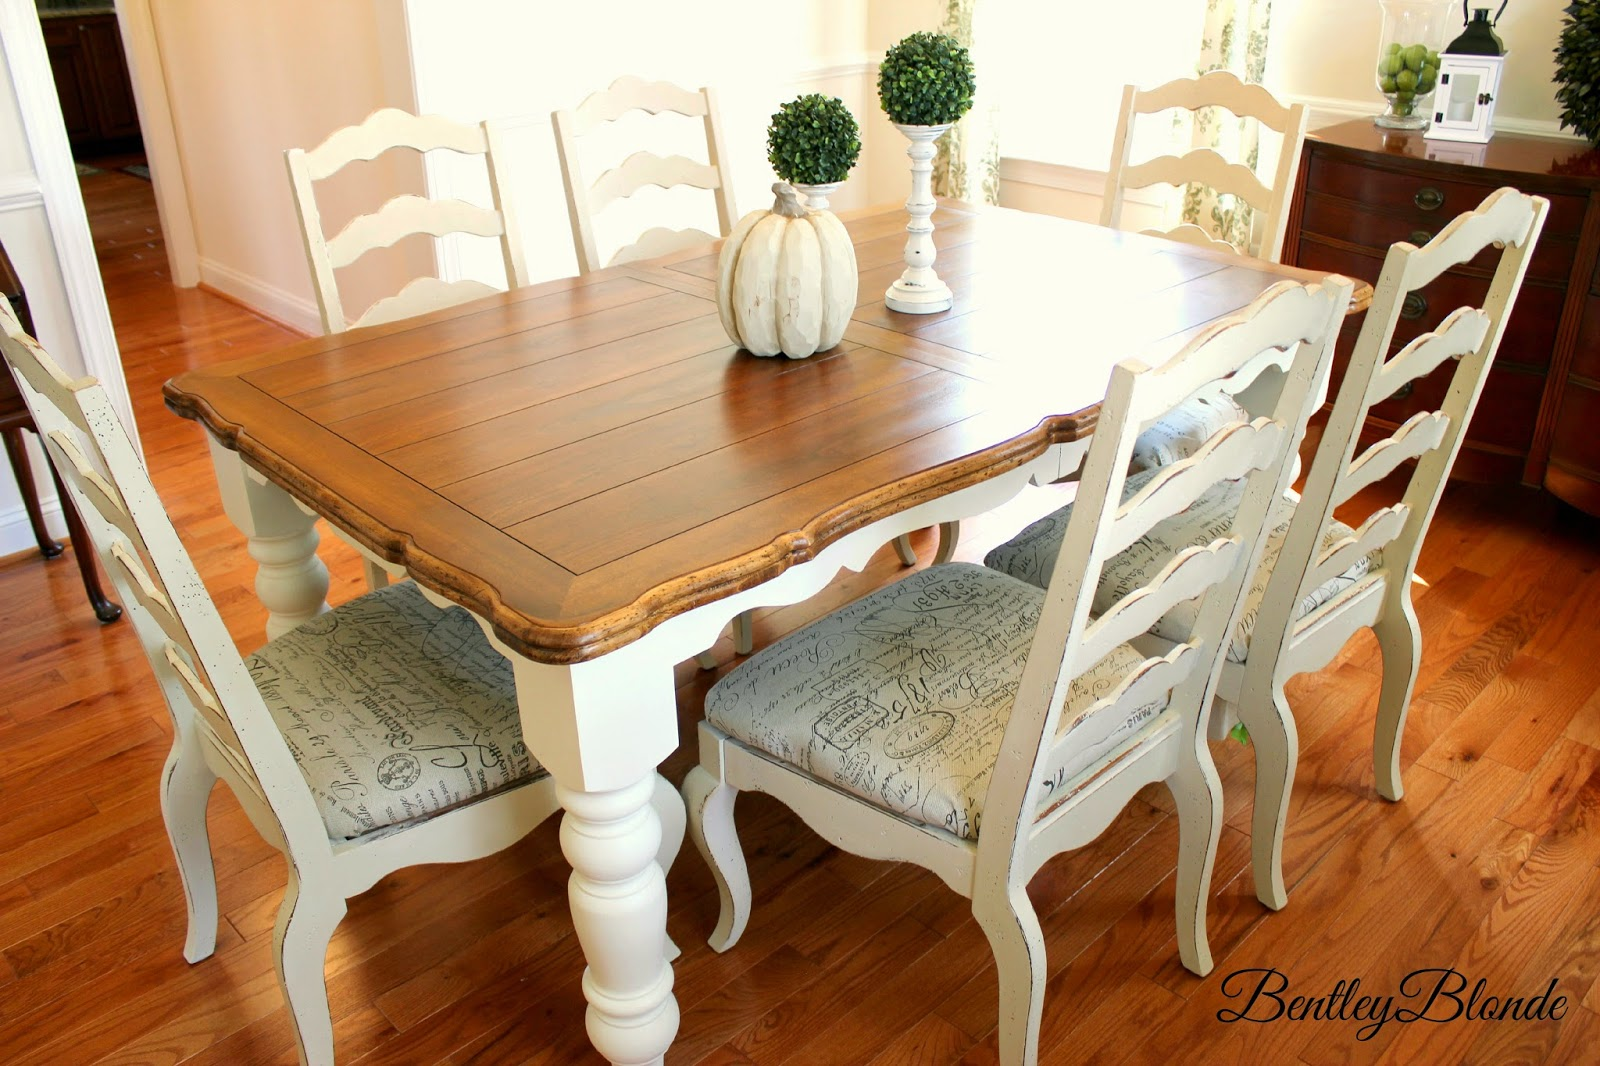 White Table Legs Ivory Chairs I Cant Wait To Sit Around This With Family Enjoying Many Delicious Meals And Memories Together In The Future